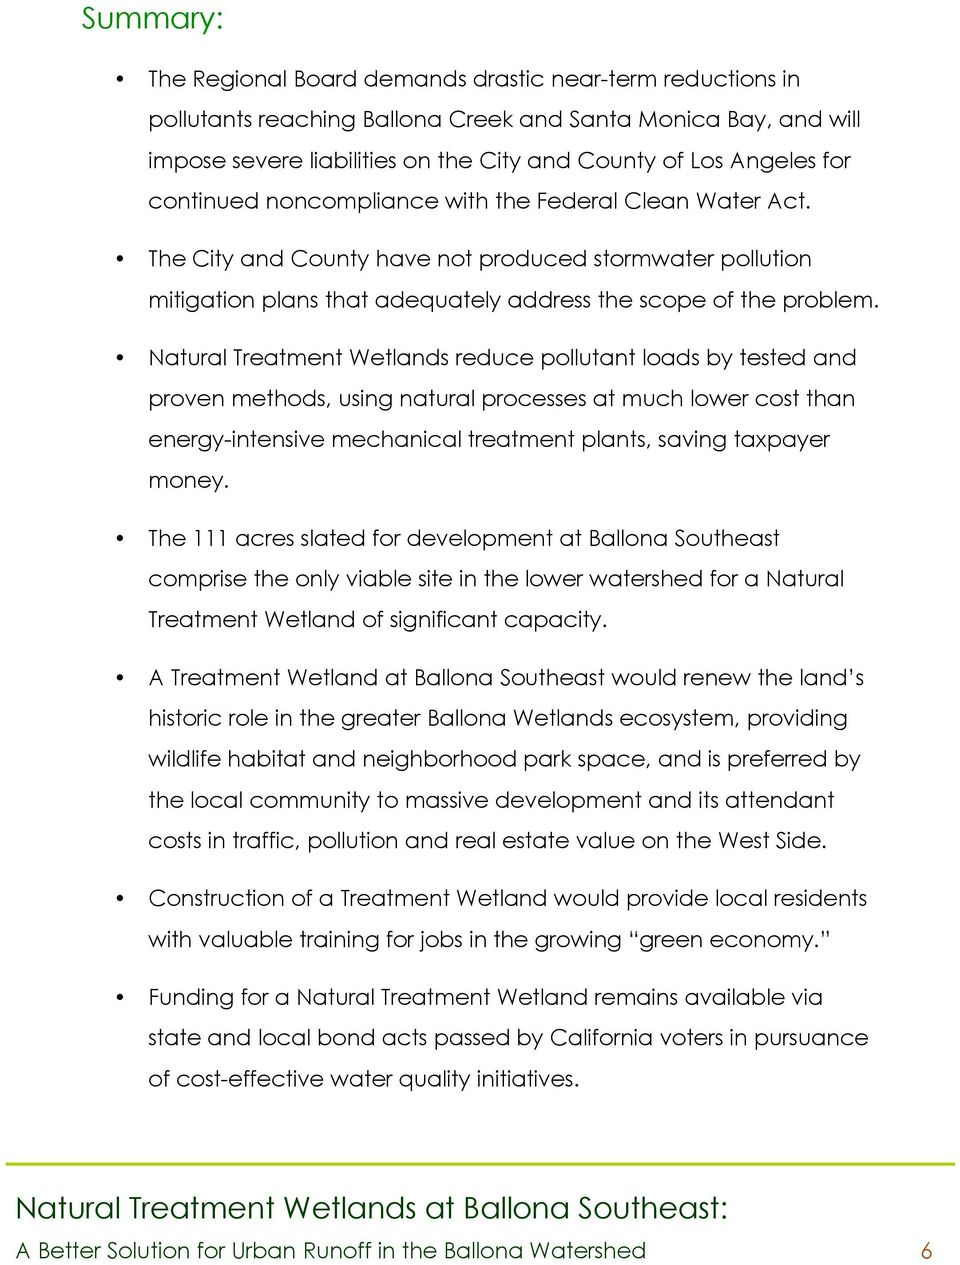 Natural Treatment Wetlands reduce pollutant loads by tested and proven methods, using natural processes at much lower cost than energy-intensive mechanical treatment plants, saving taxpayer money.